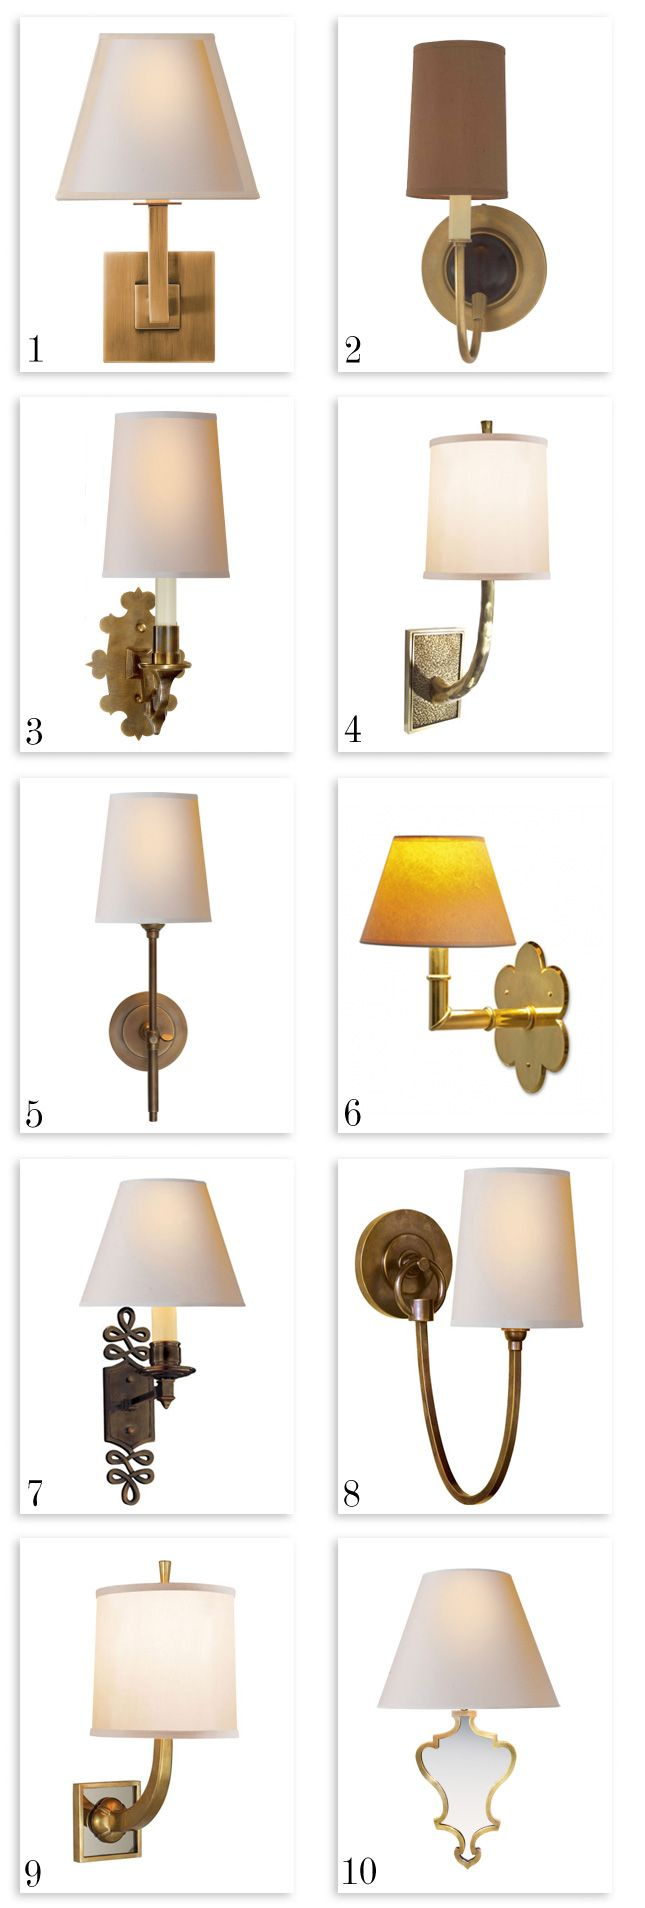 Architectural Wall Sconce ($189) 2. Elkins Sconce ($252) 4